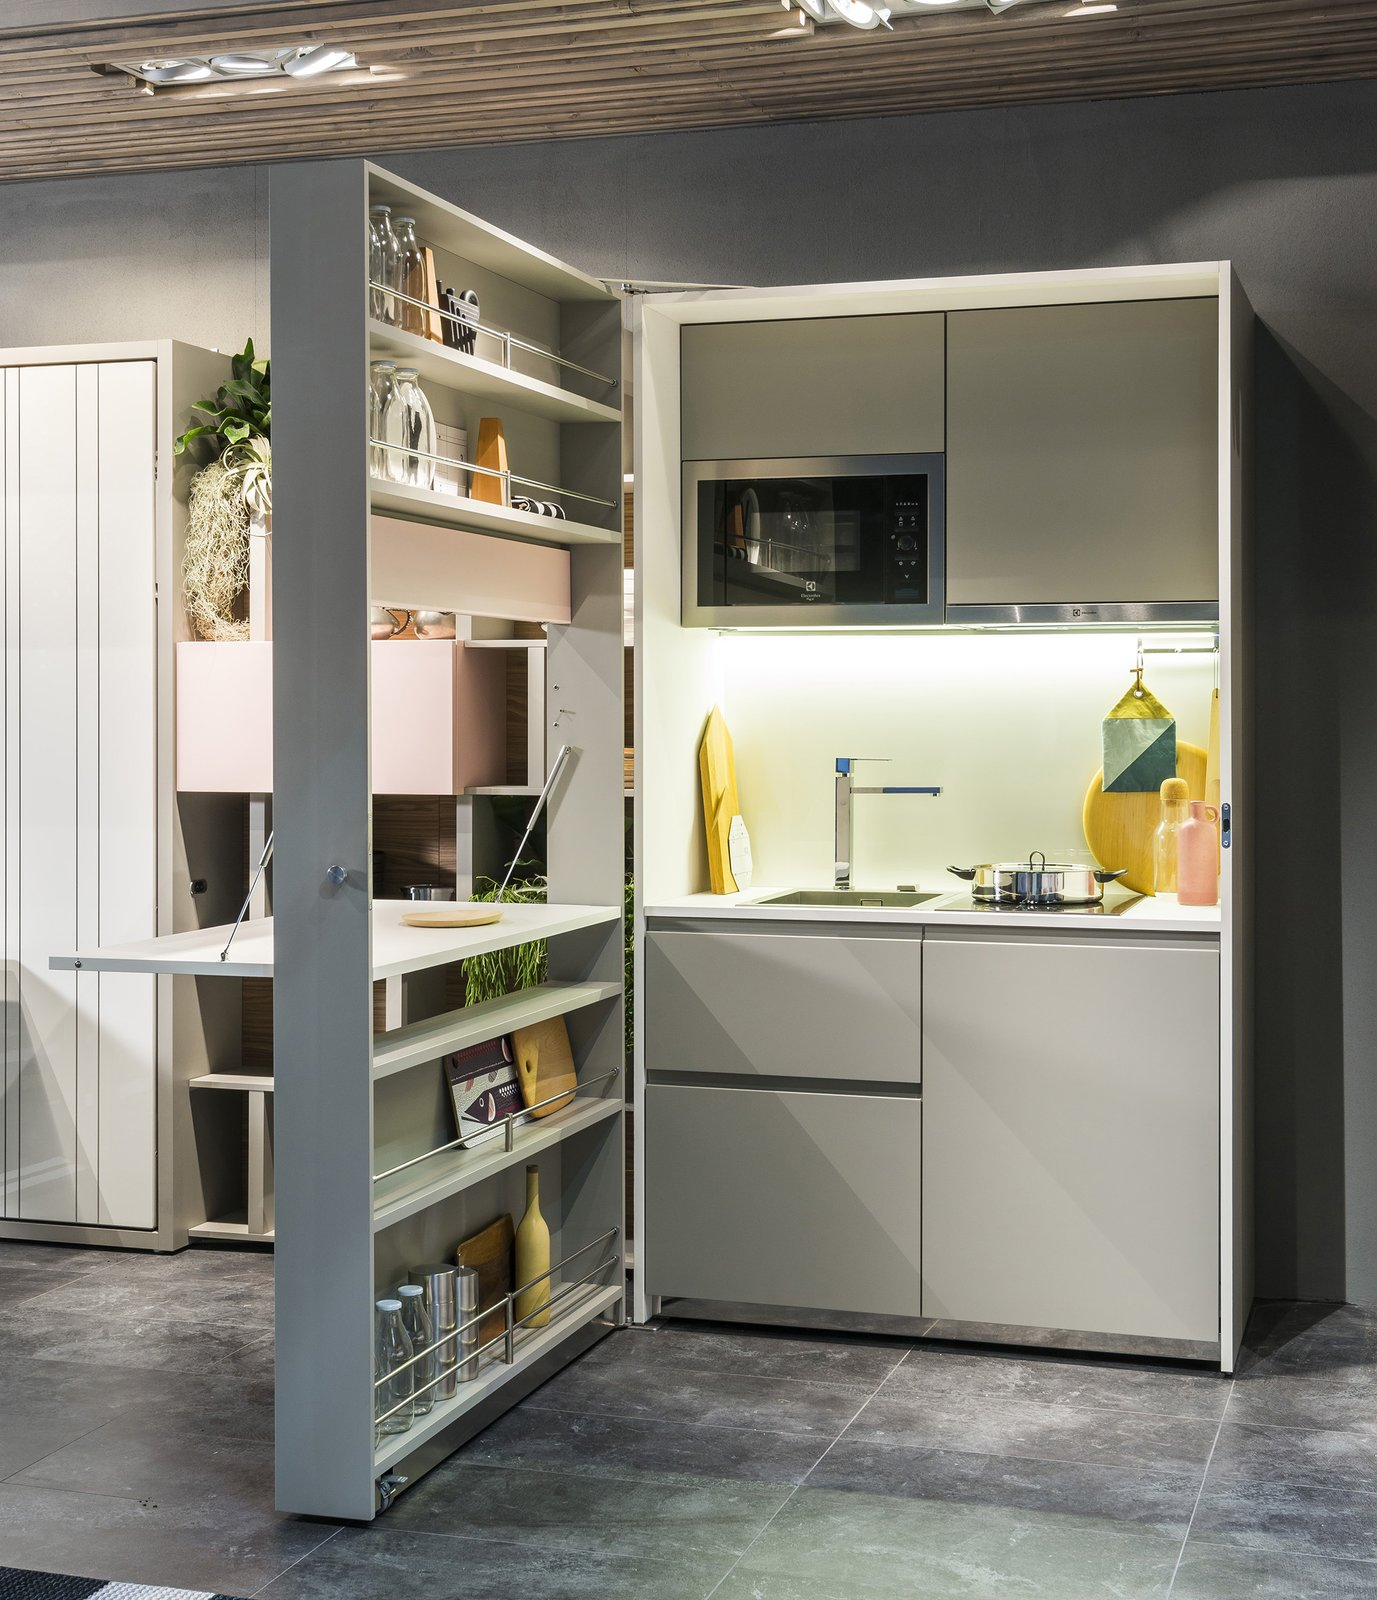 The Box Kitchen contains two burners, a ventilation hood, a sink, a dishwasher, and a microwave. A fold-down laminated countertop creates a prep surface.  Solutions For Tiny Kitchens by Aileen Kwun from Genius Unfolding Kitchen Tucks Neatly Into Small Spaces